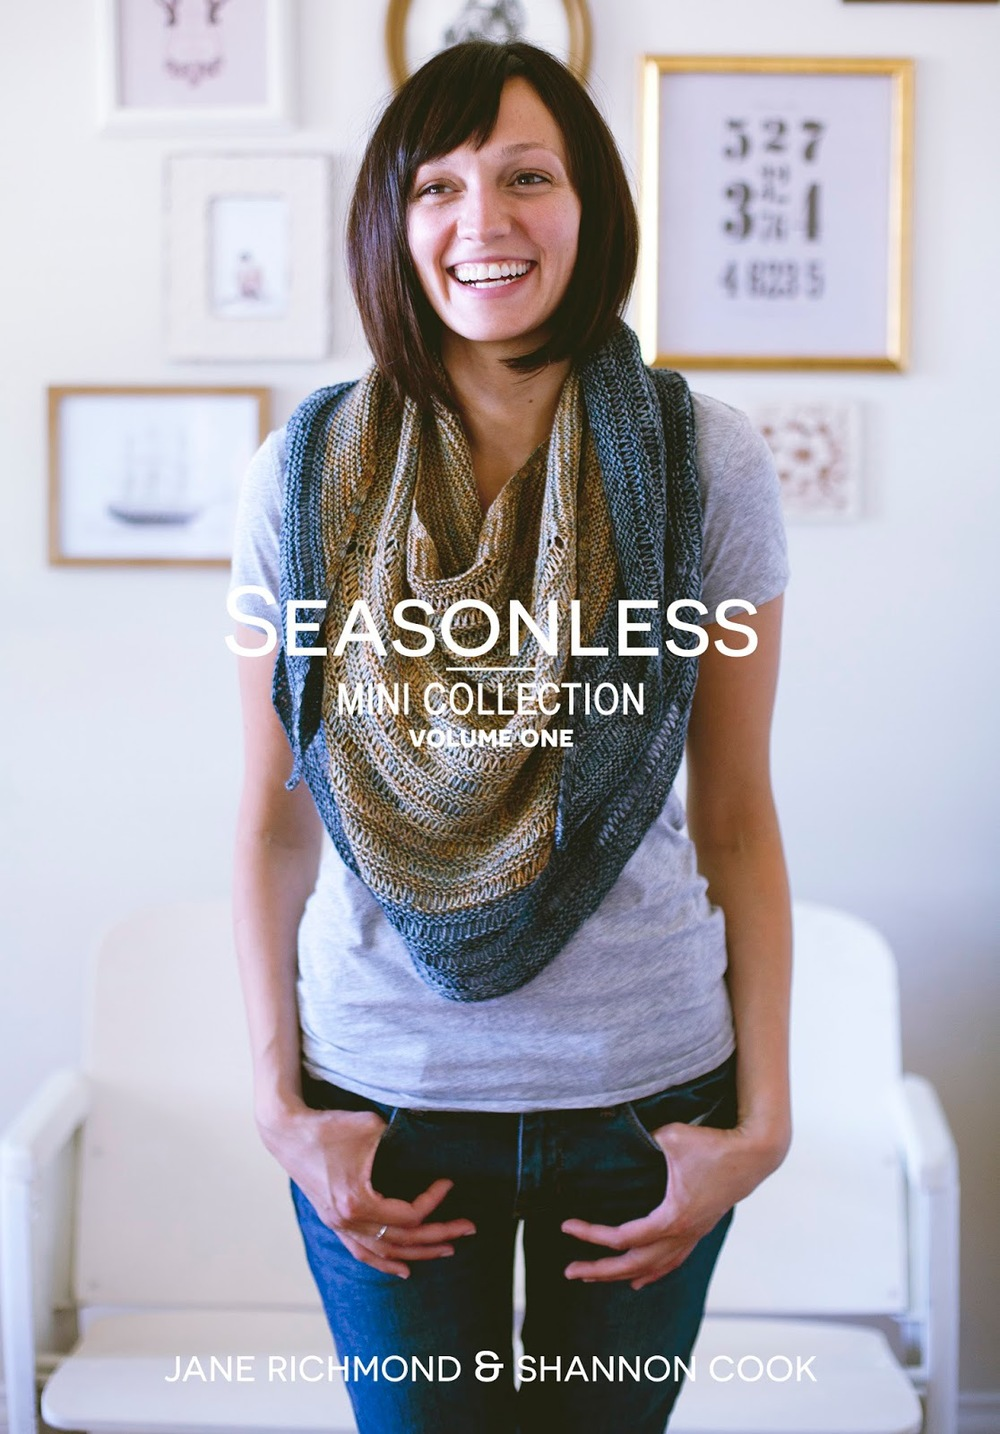 SEASONLESS || Mini Collection Volume One by Shannon Cook and Jane Richmond #seasonlessknits